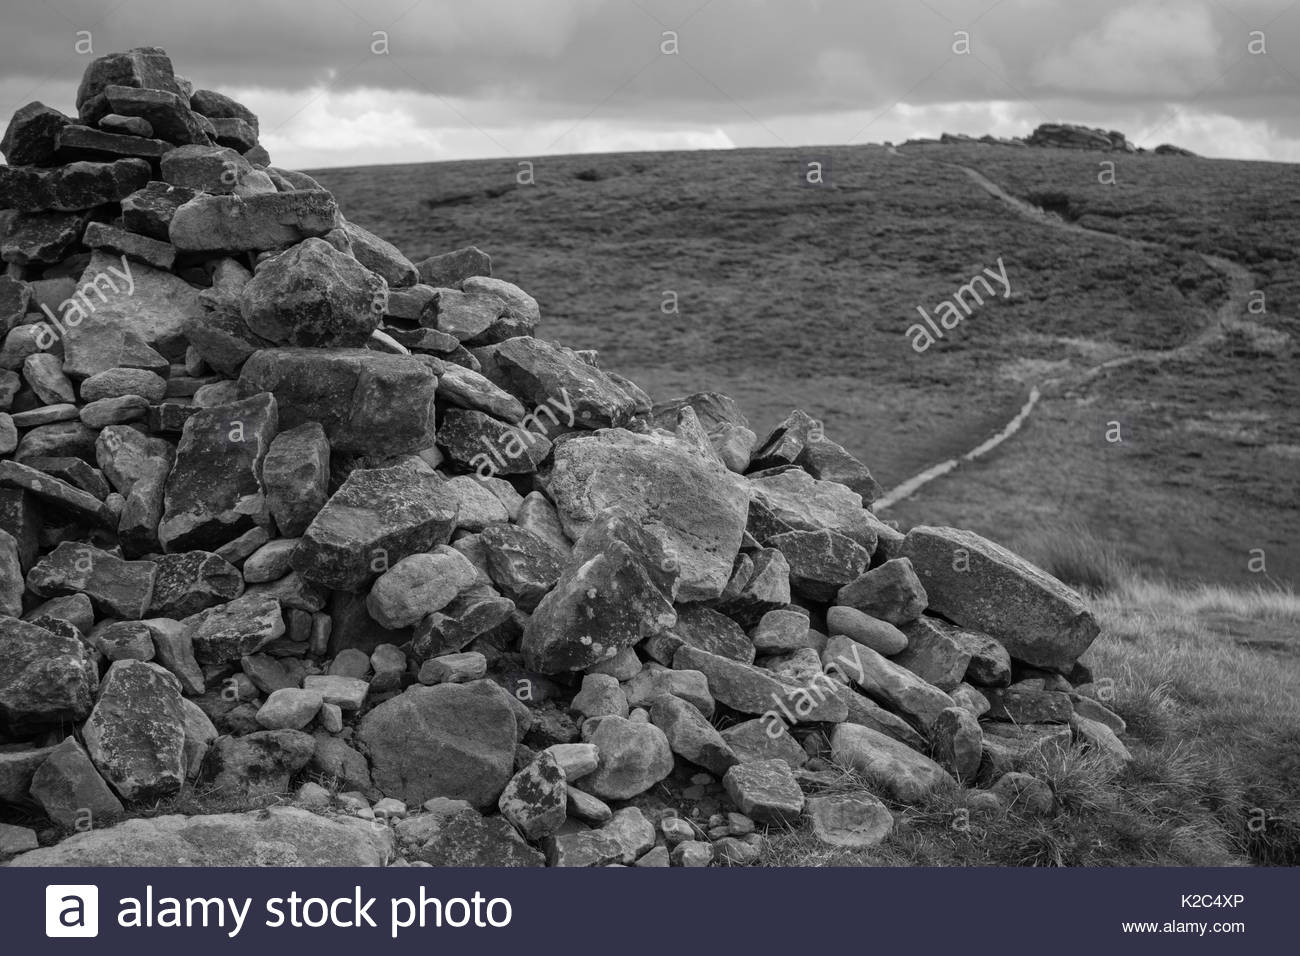 Lost Lad Cairn (mono) - Stock Image